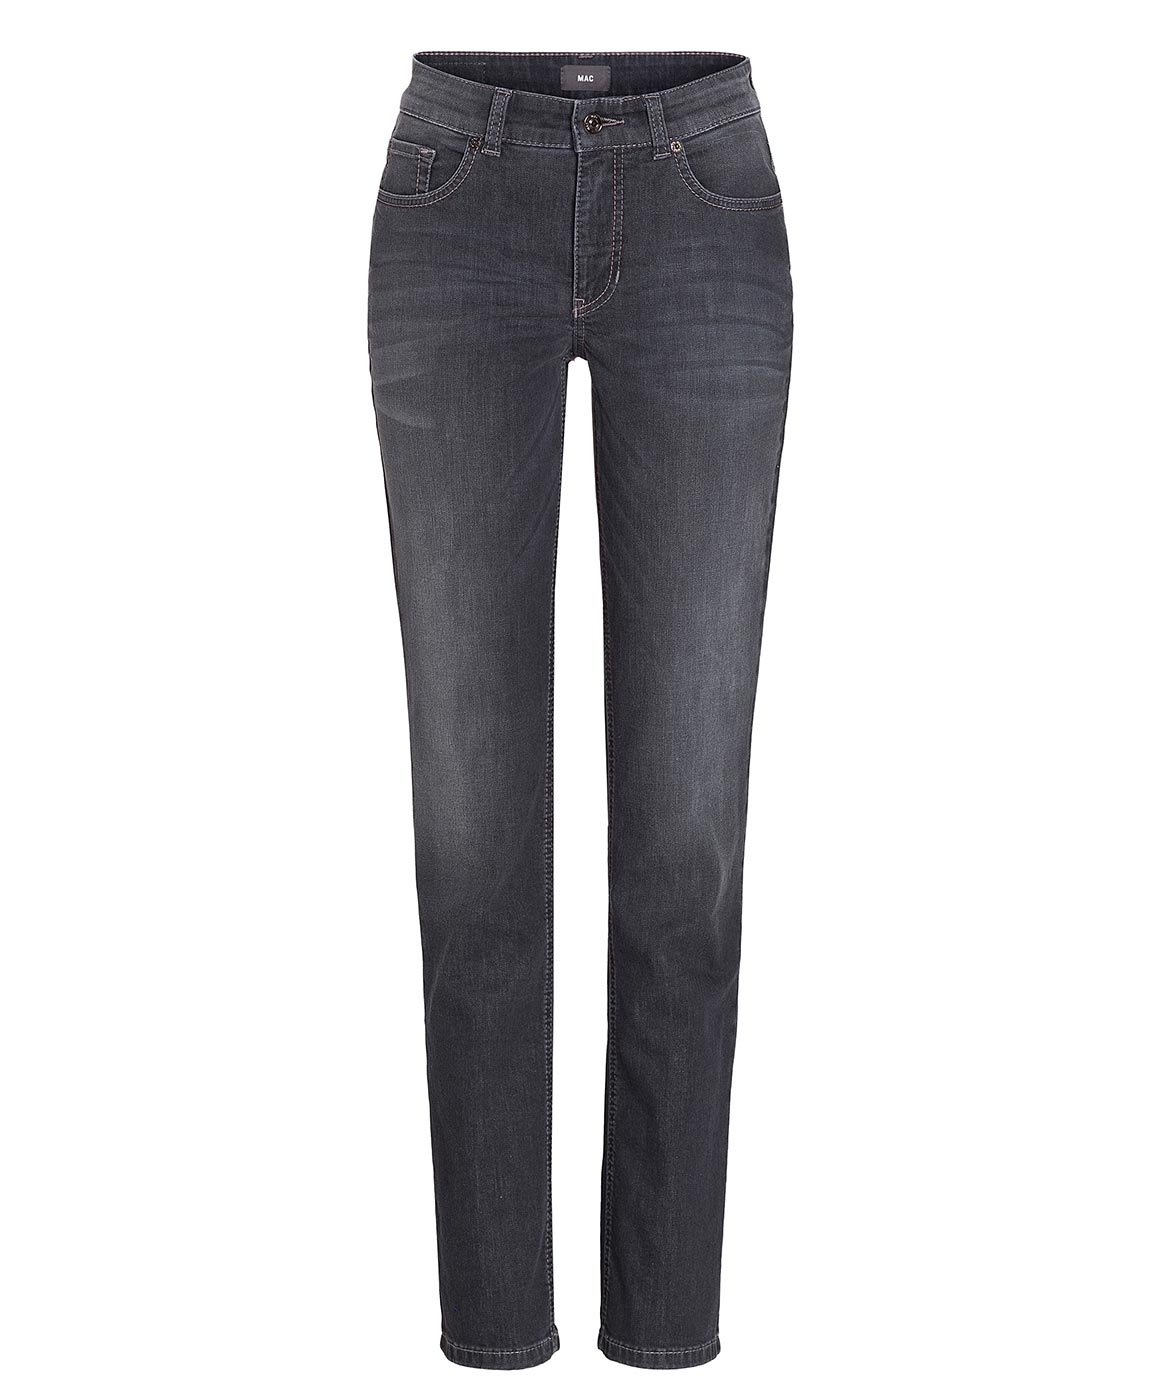 MELANIE Jeans - Feminine Fit - Dark Grey Used